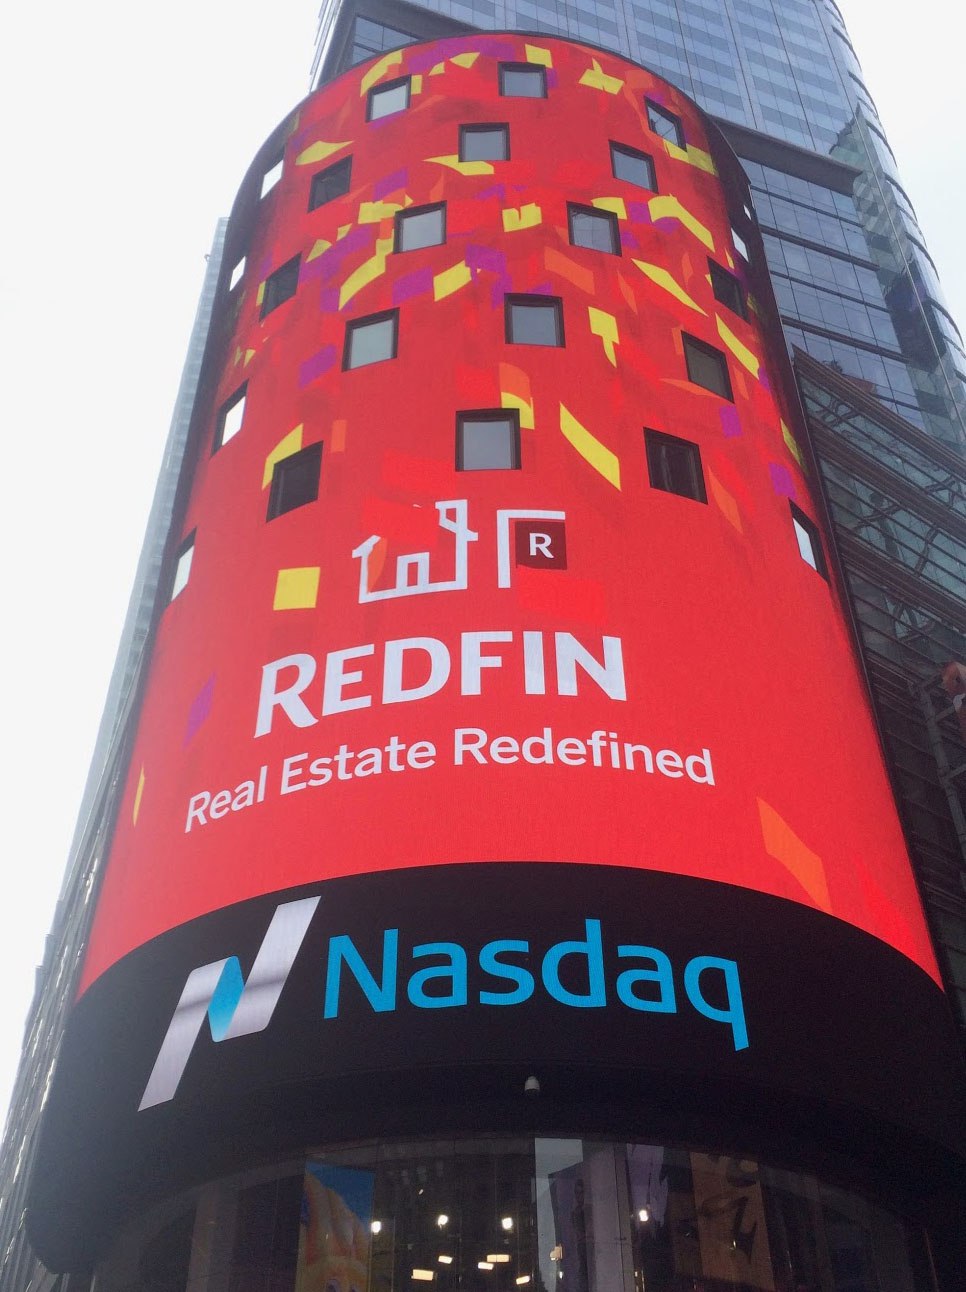 Redfin Real Estate - Android Apps on Google Play |Redfin Real Estate